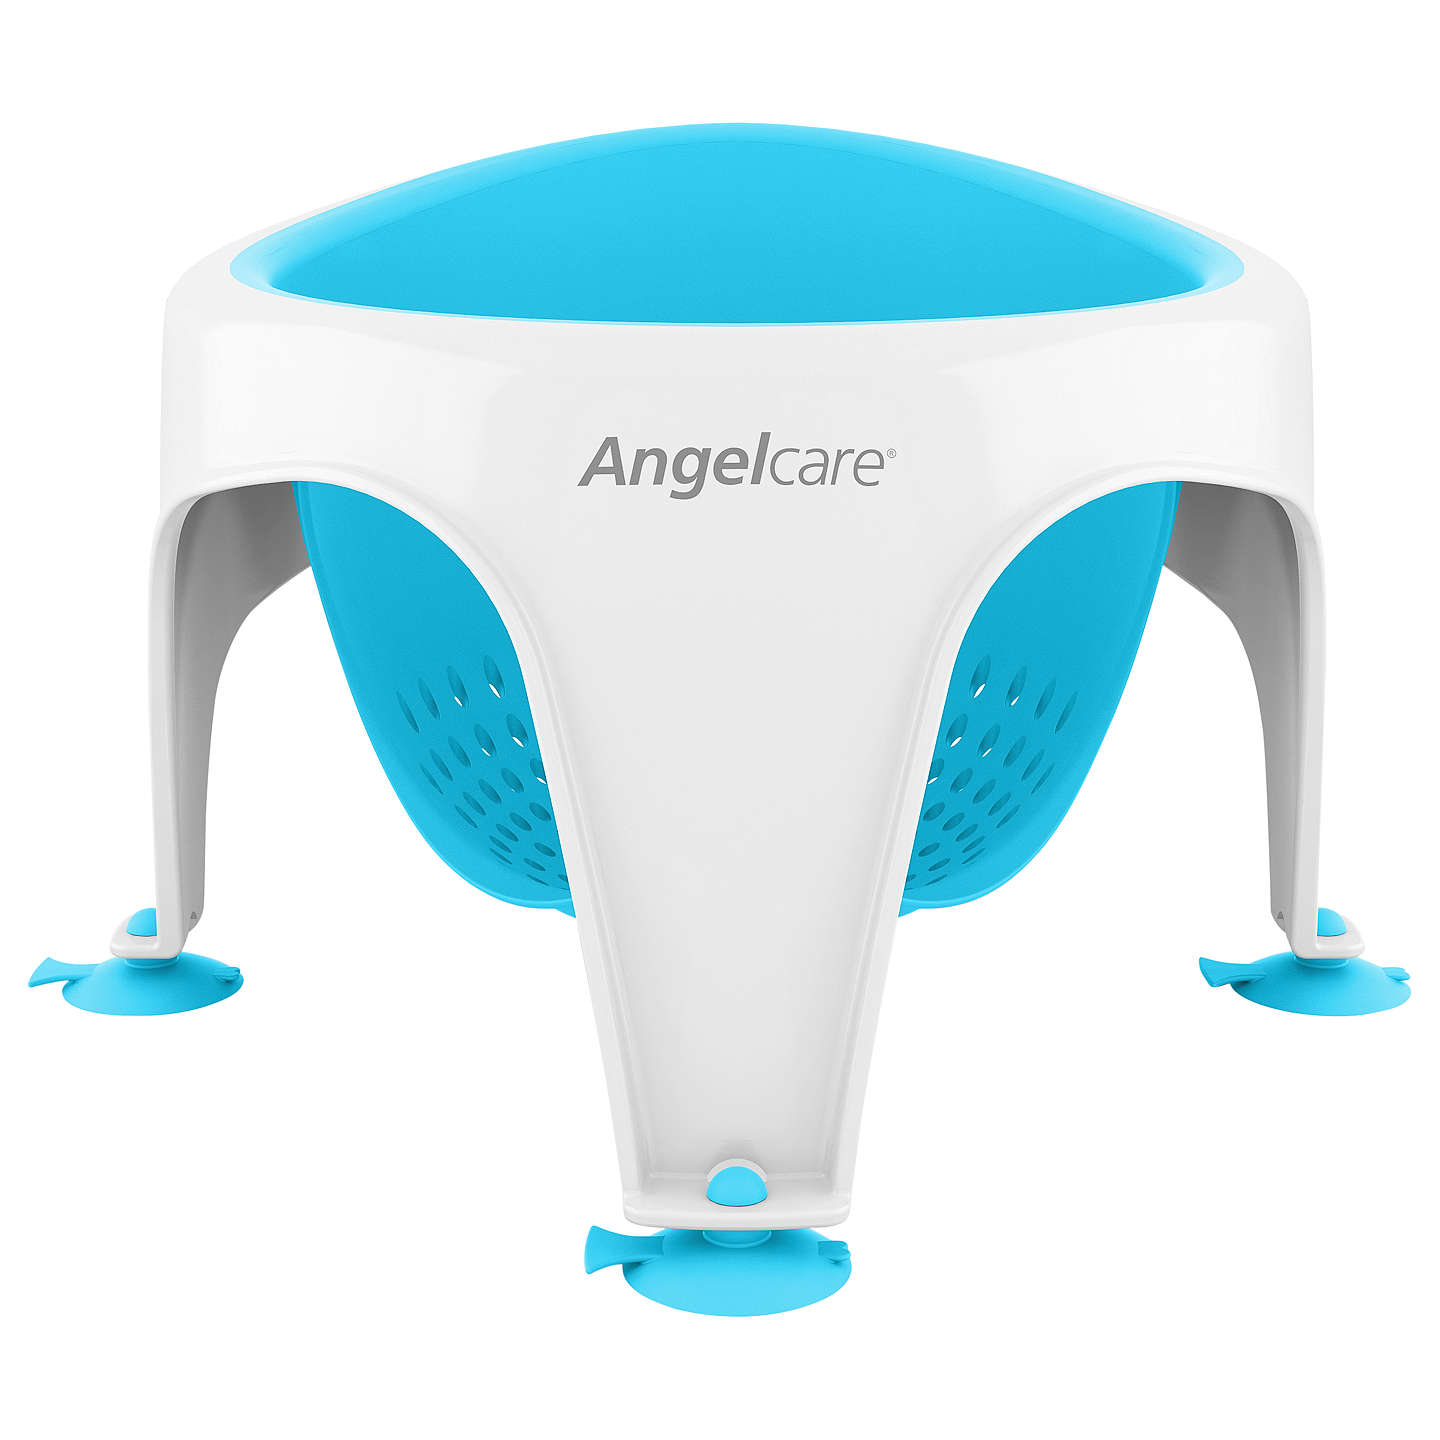 Angelcare Baby Bath Seat, Blue at John Lewis